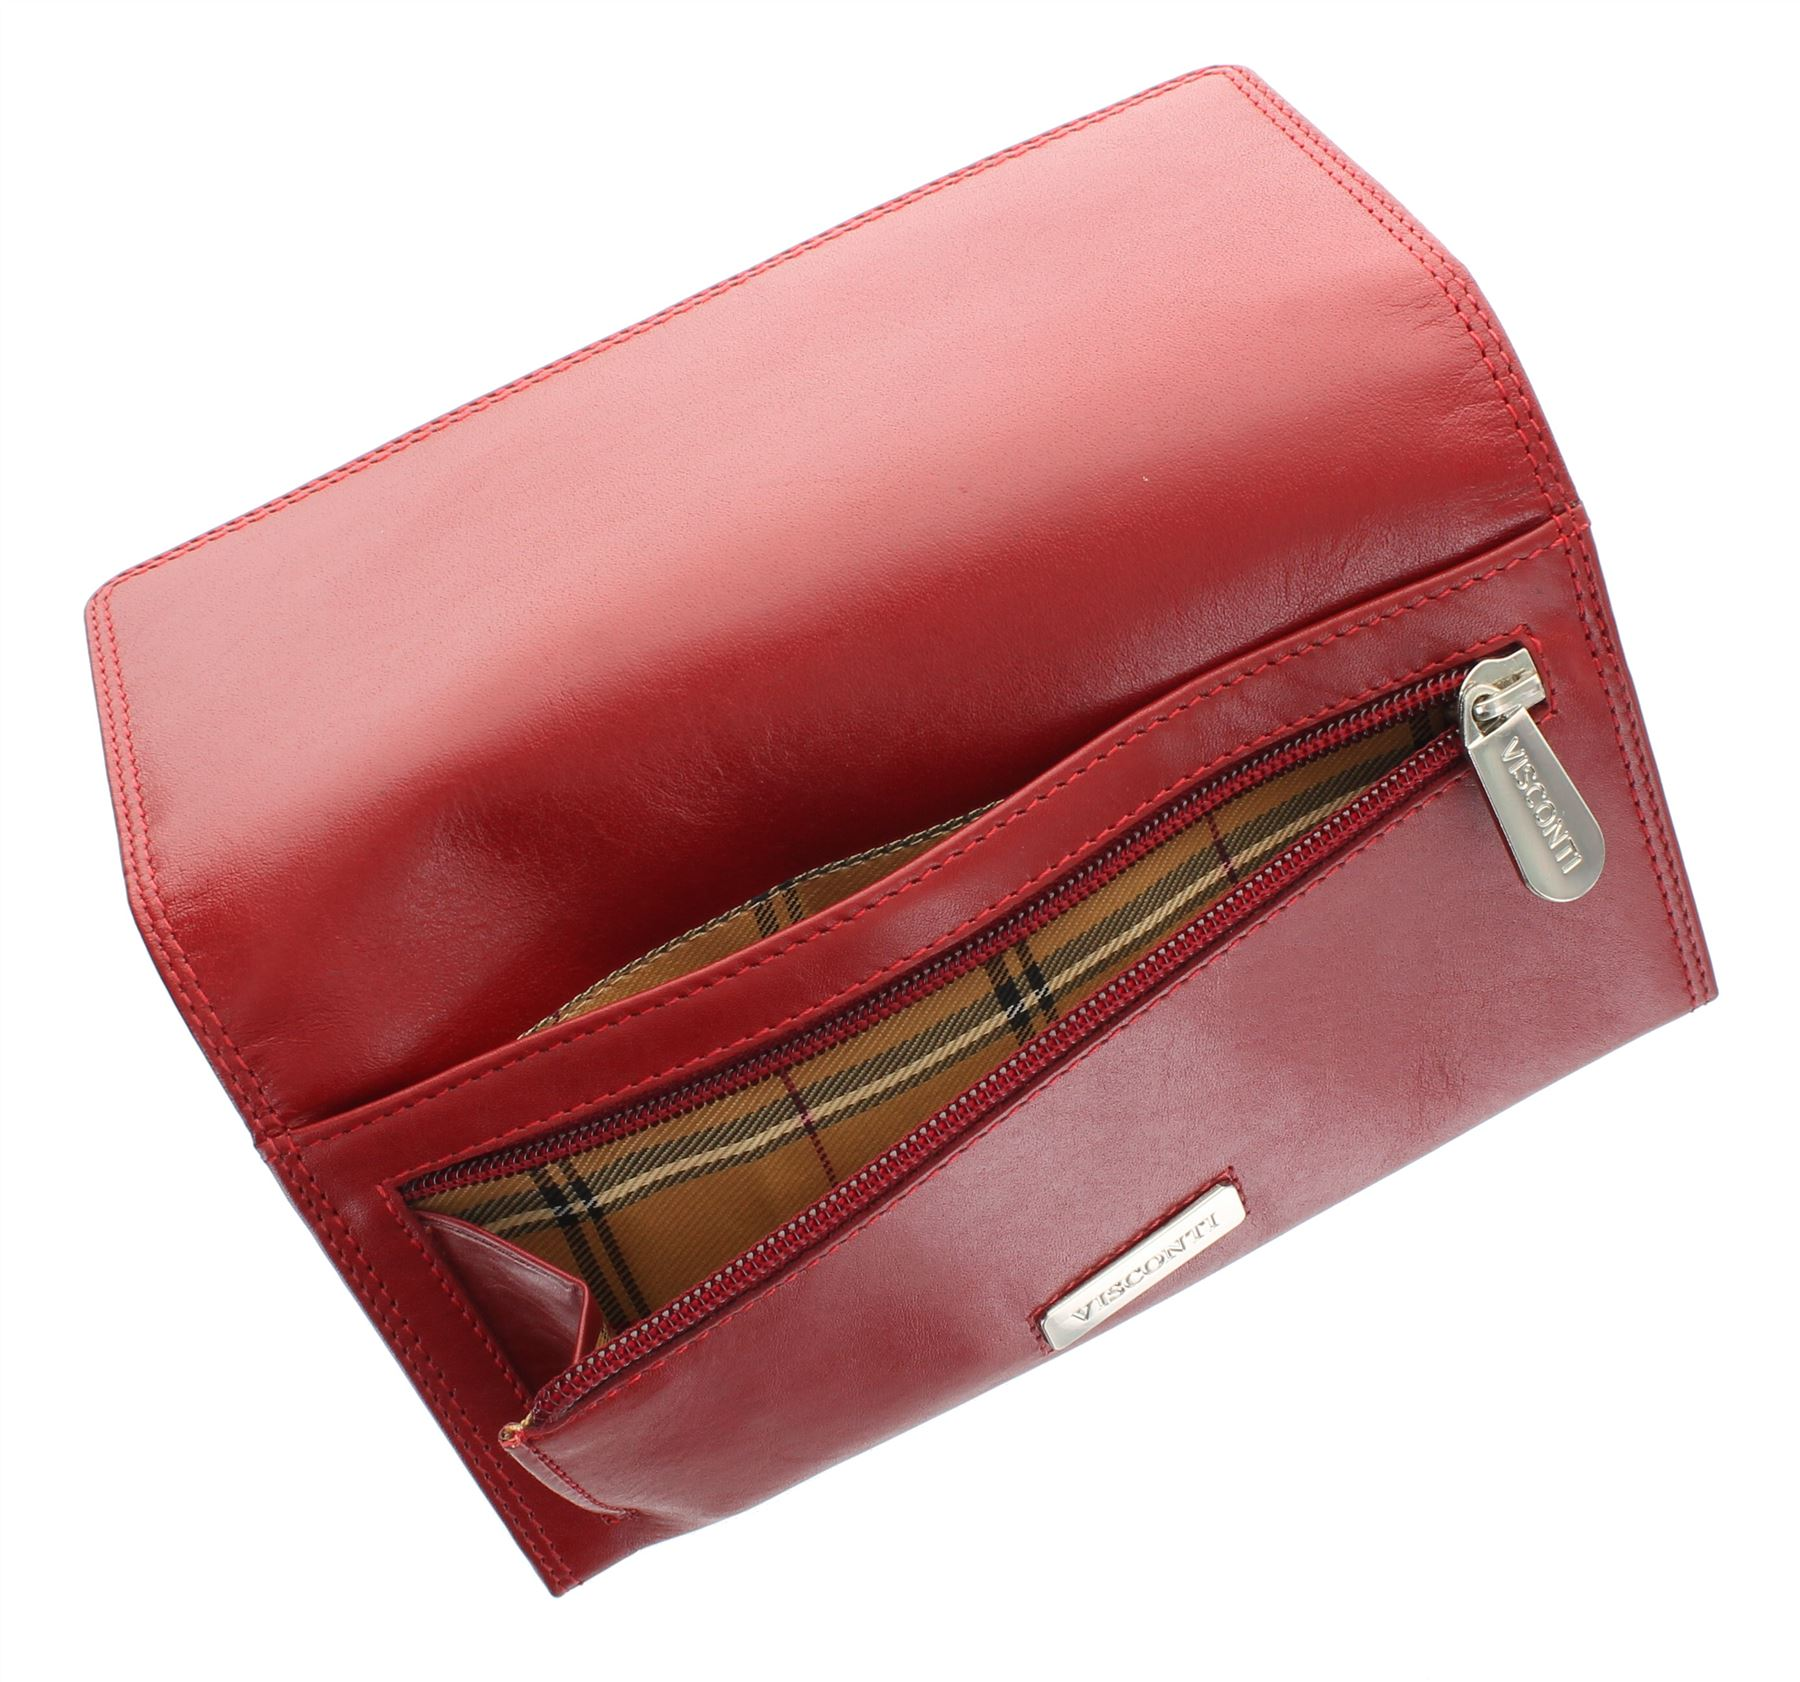 Visconti Monza Collection FLORENCE Vegetable Tanned Leather Ladies Purse MZ10